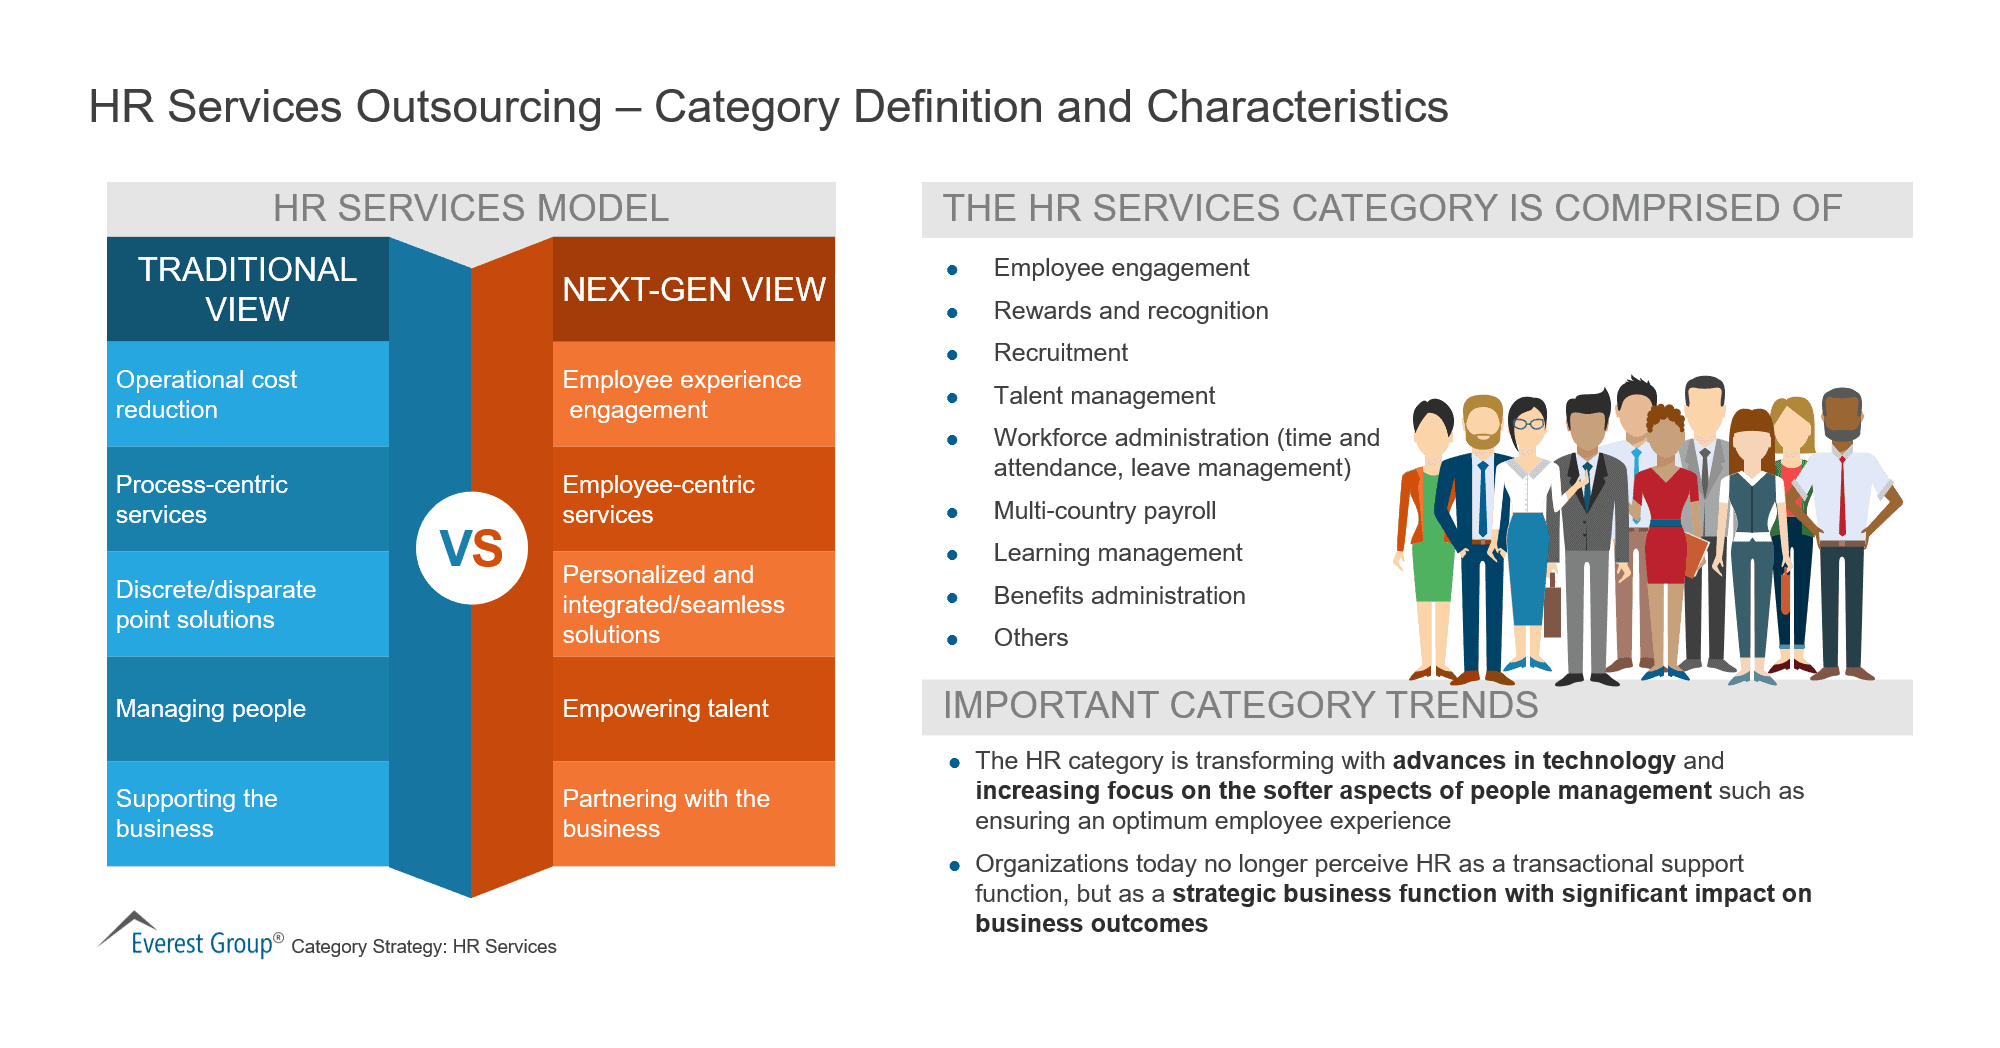 HR Services Outsourcing – Category Definition and Characteristics